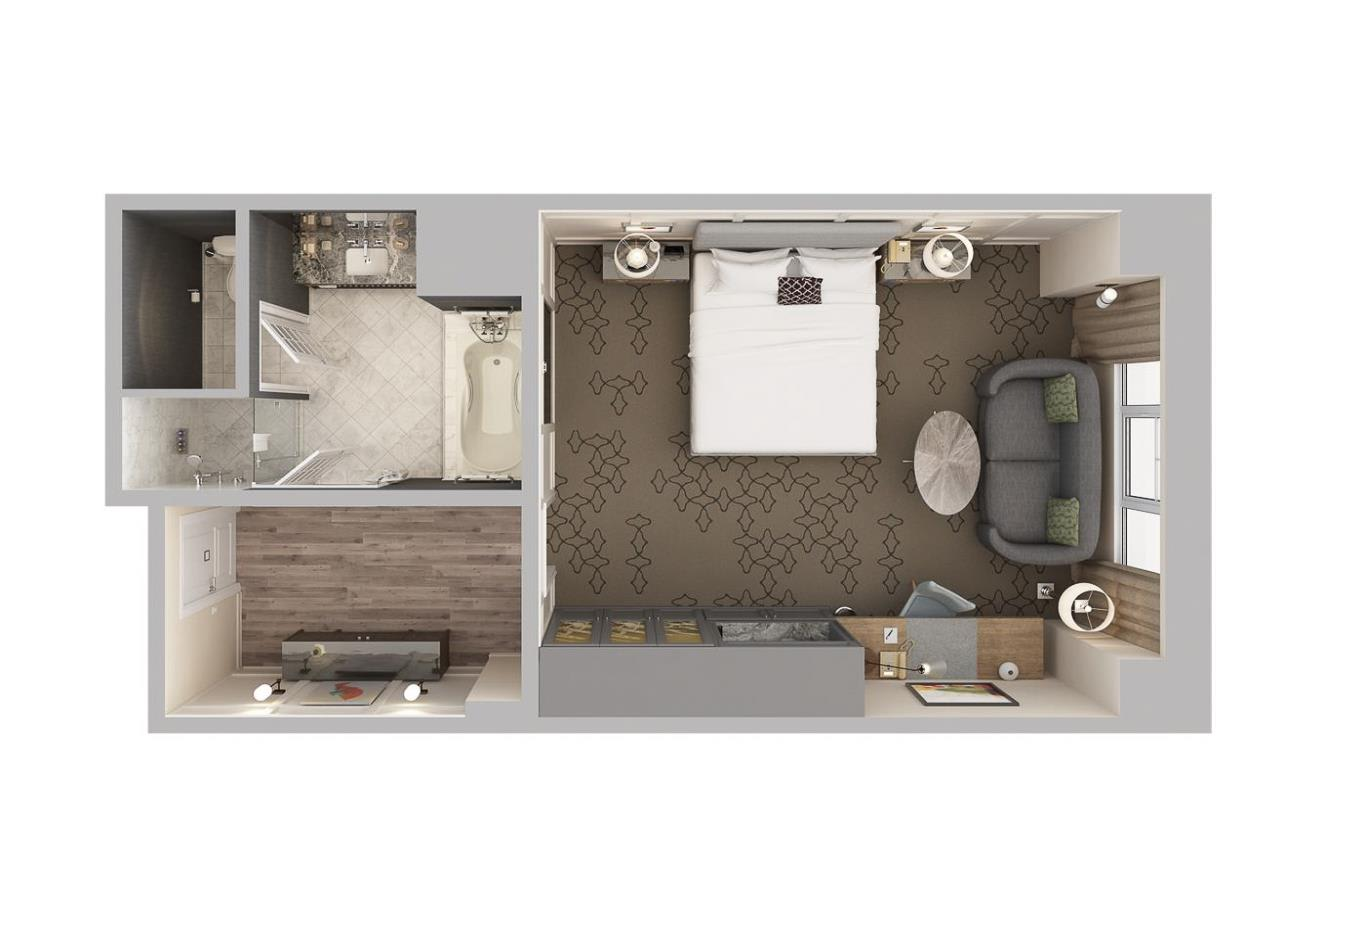 Coastal View Guest Room floorplan